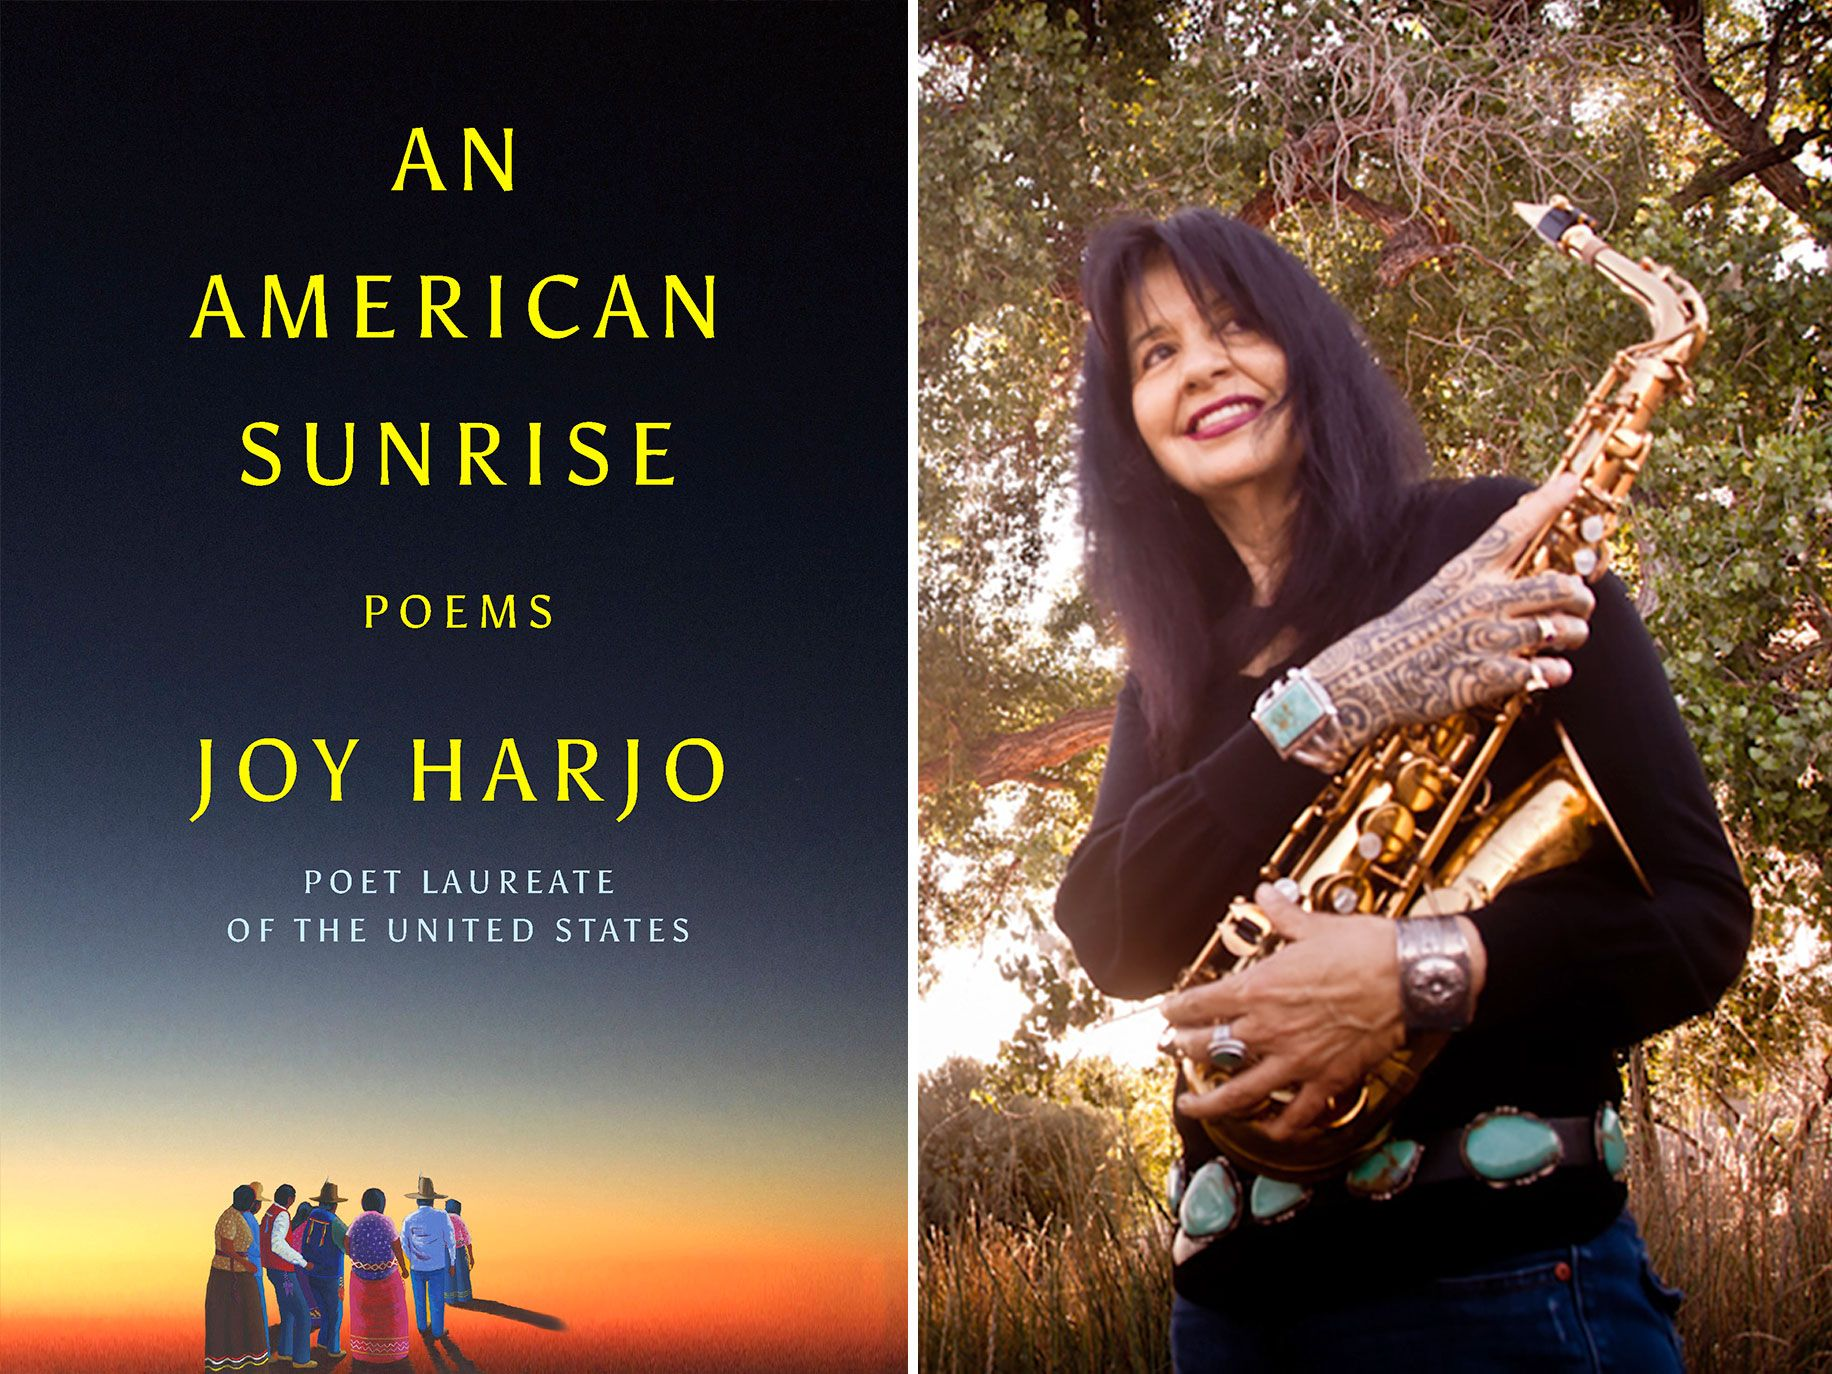 Joy Harjo, author of An American Sunrise, is the first Native American poet laureate of the United States.